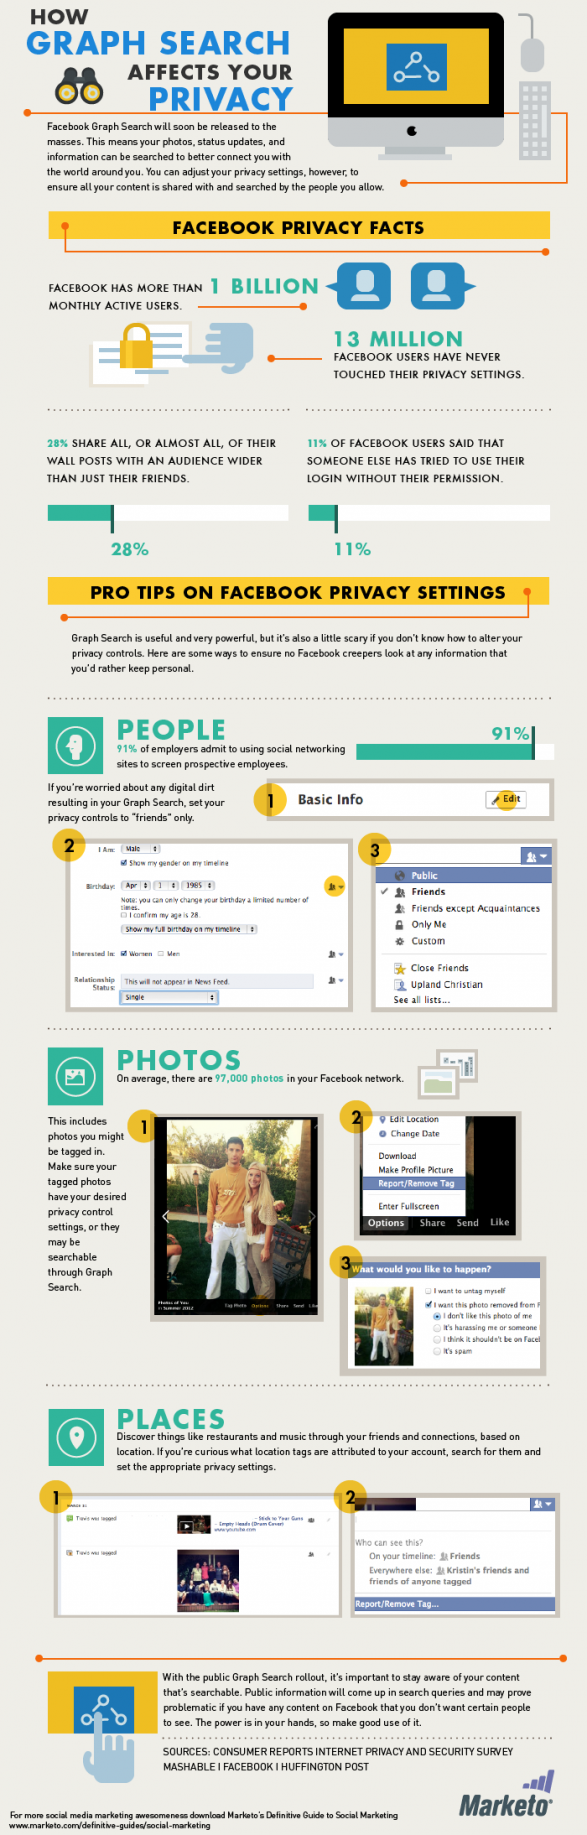 Facebook Graph Search Privacy Settings [INFOGRAPHIC]